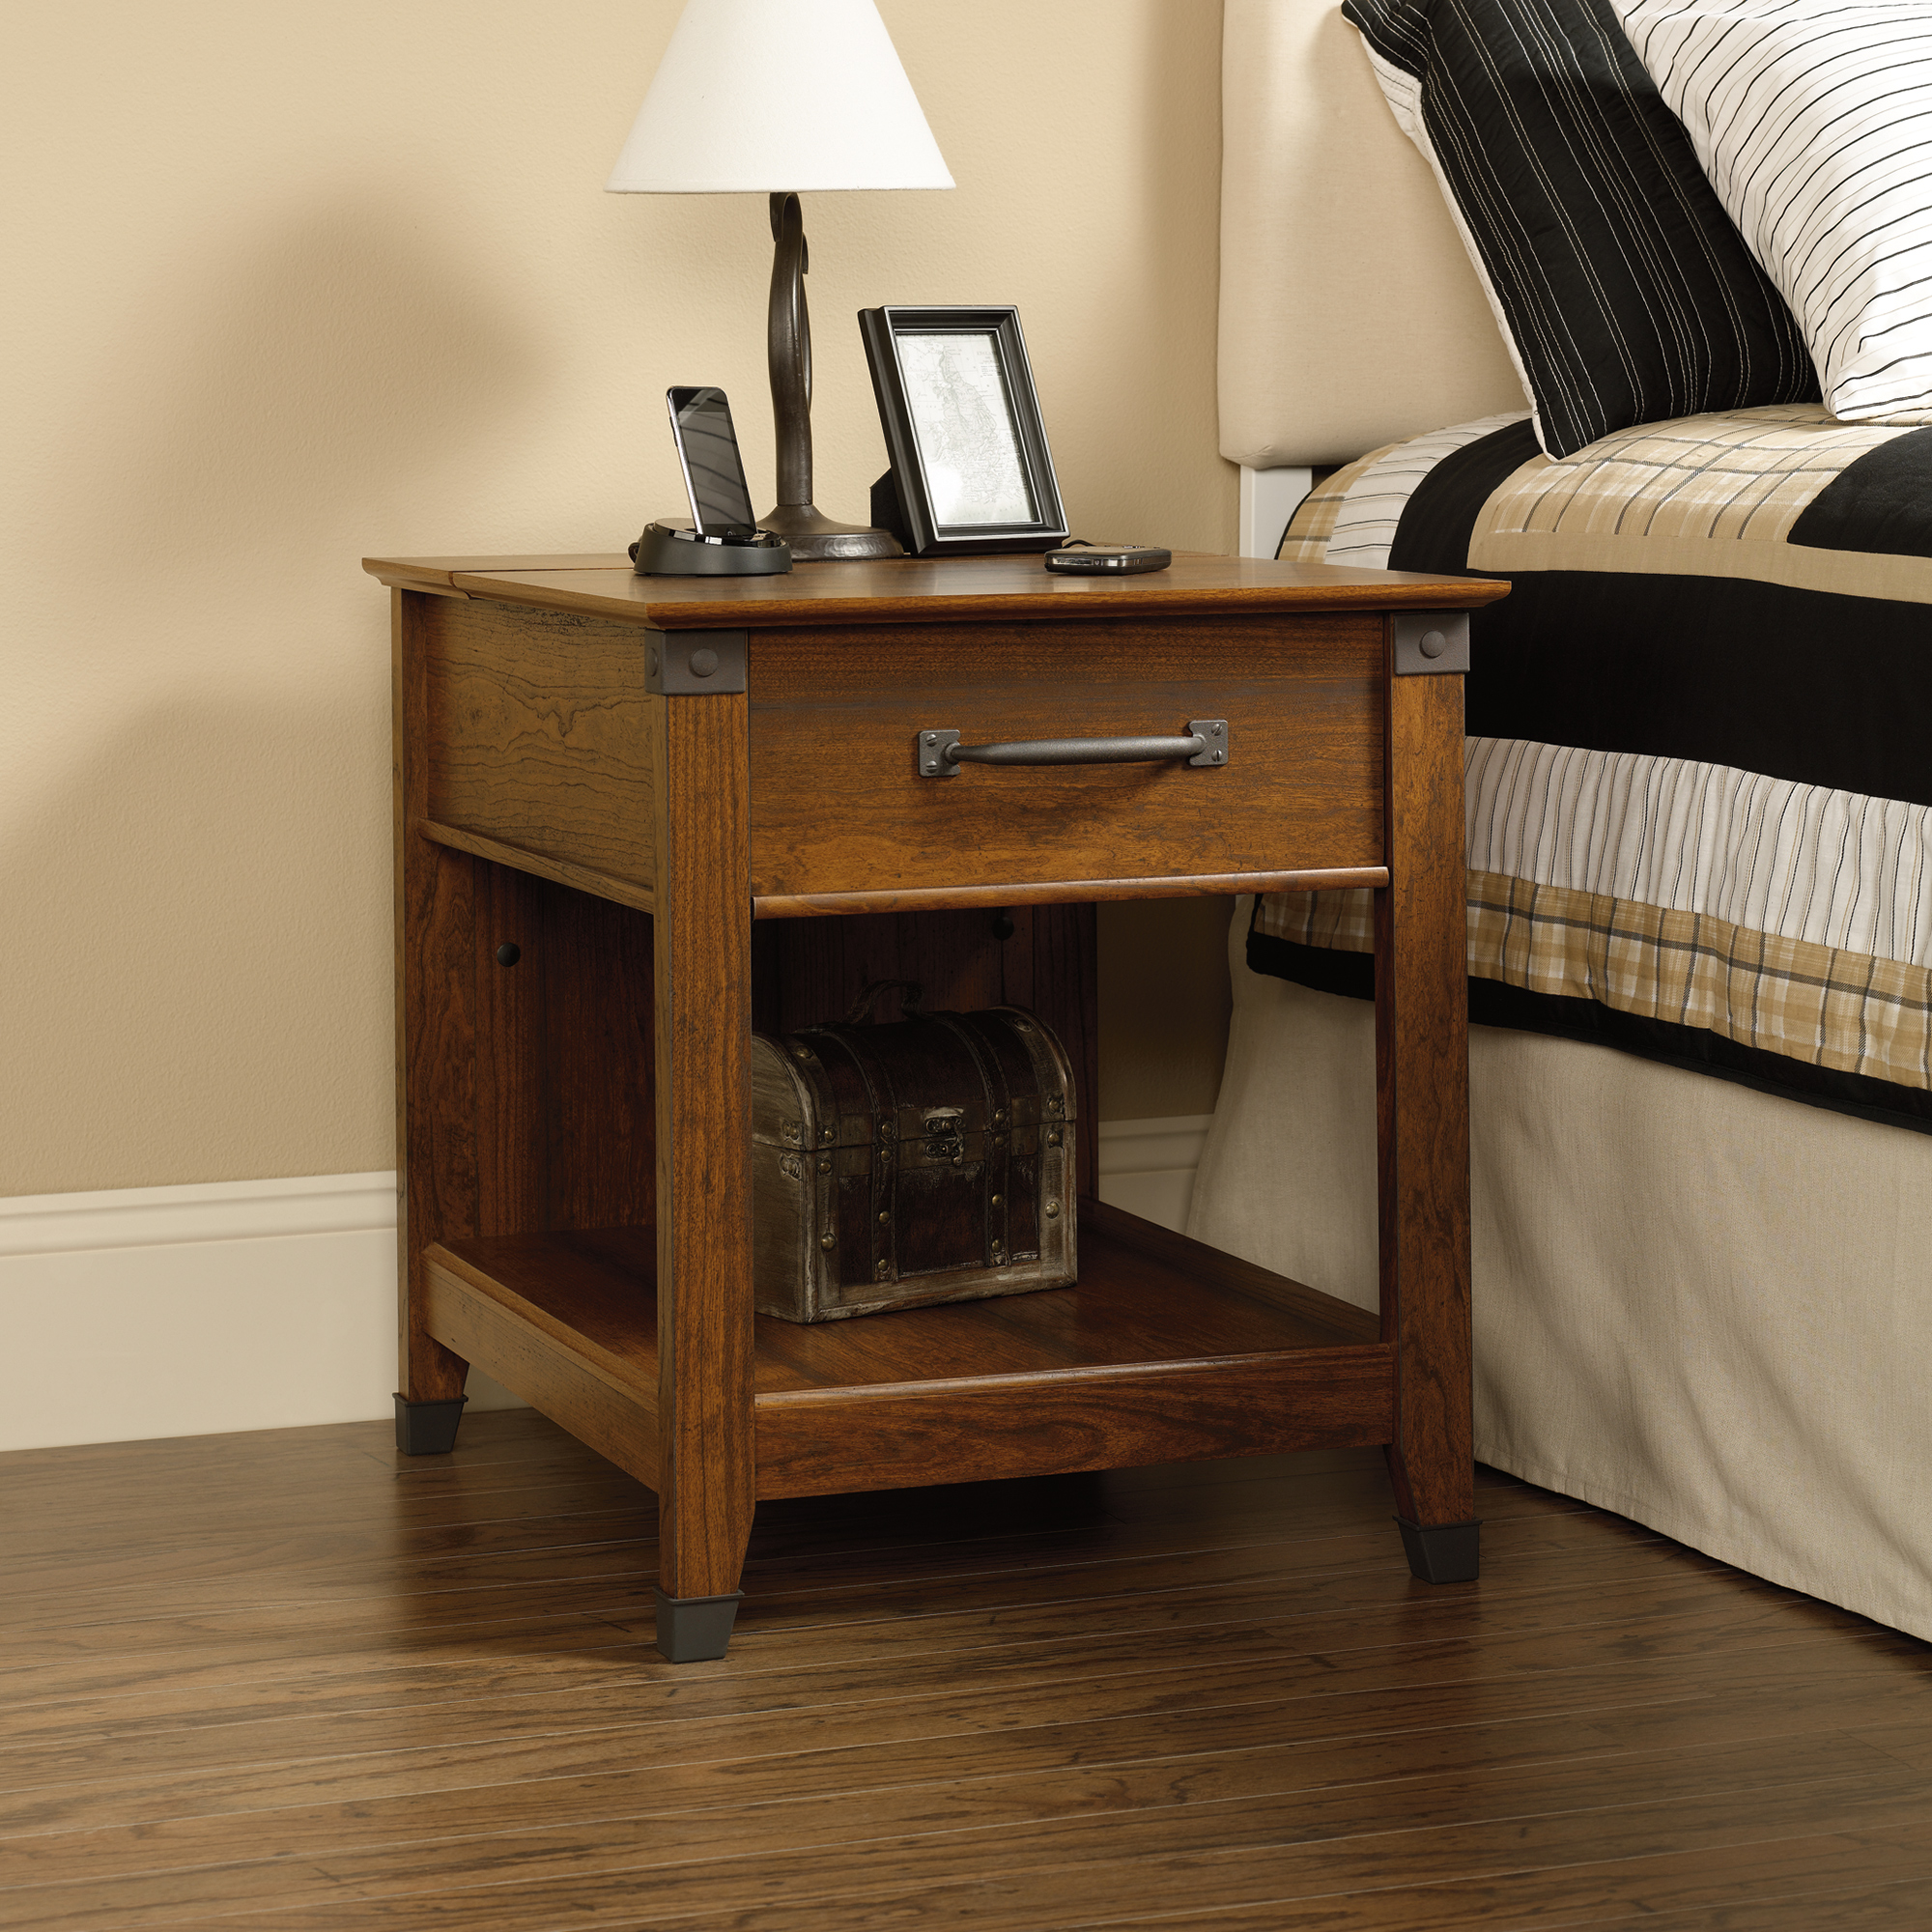 carson forge smartcenter side table sauder end with charging station unique rustic coffee tables and accent dog made from pet odd lots furniture cherry finish sets hexagon pipe